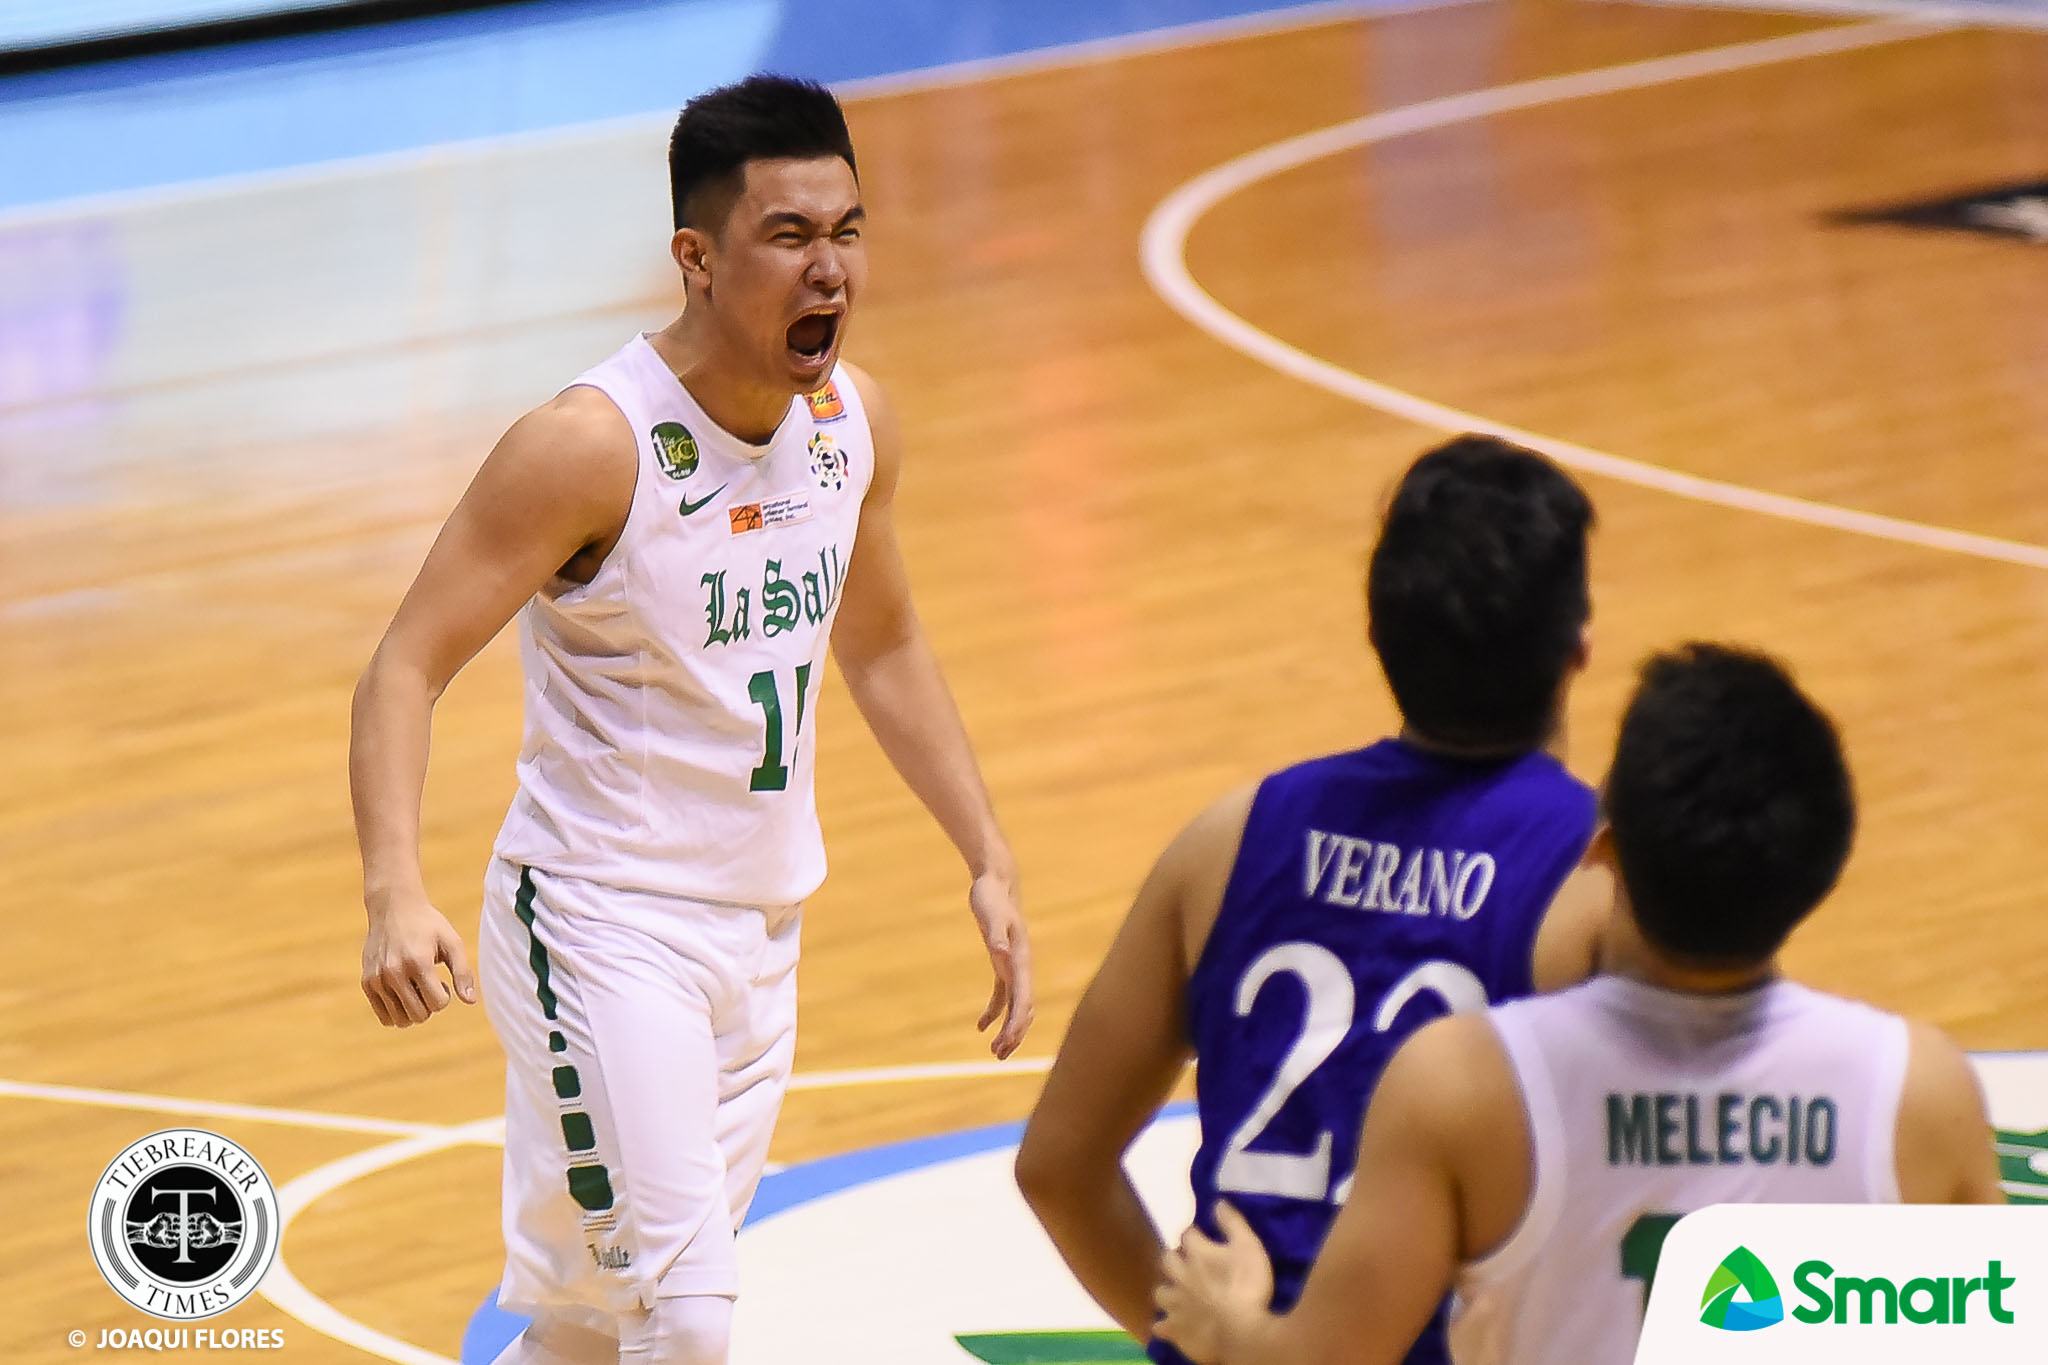 Philippine Sports News - Tiebreaker Times Kib Montalbo settles down, bounces back against Ateneo Basketball DLSU News UAAP  UAAP Season 80 Men's Basketball UAAP Season 80 Kib Montalbo DLSU Men's Basketball Aldin Ayo